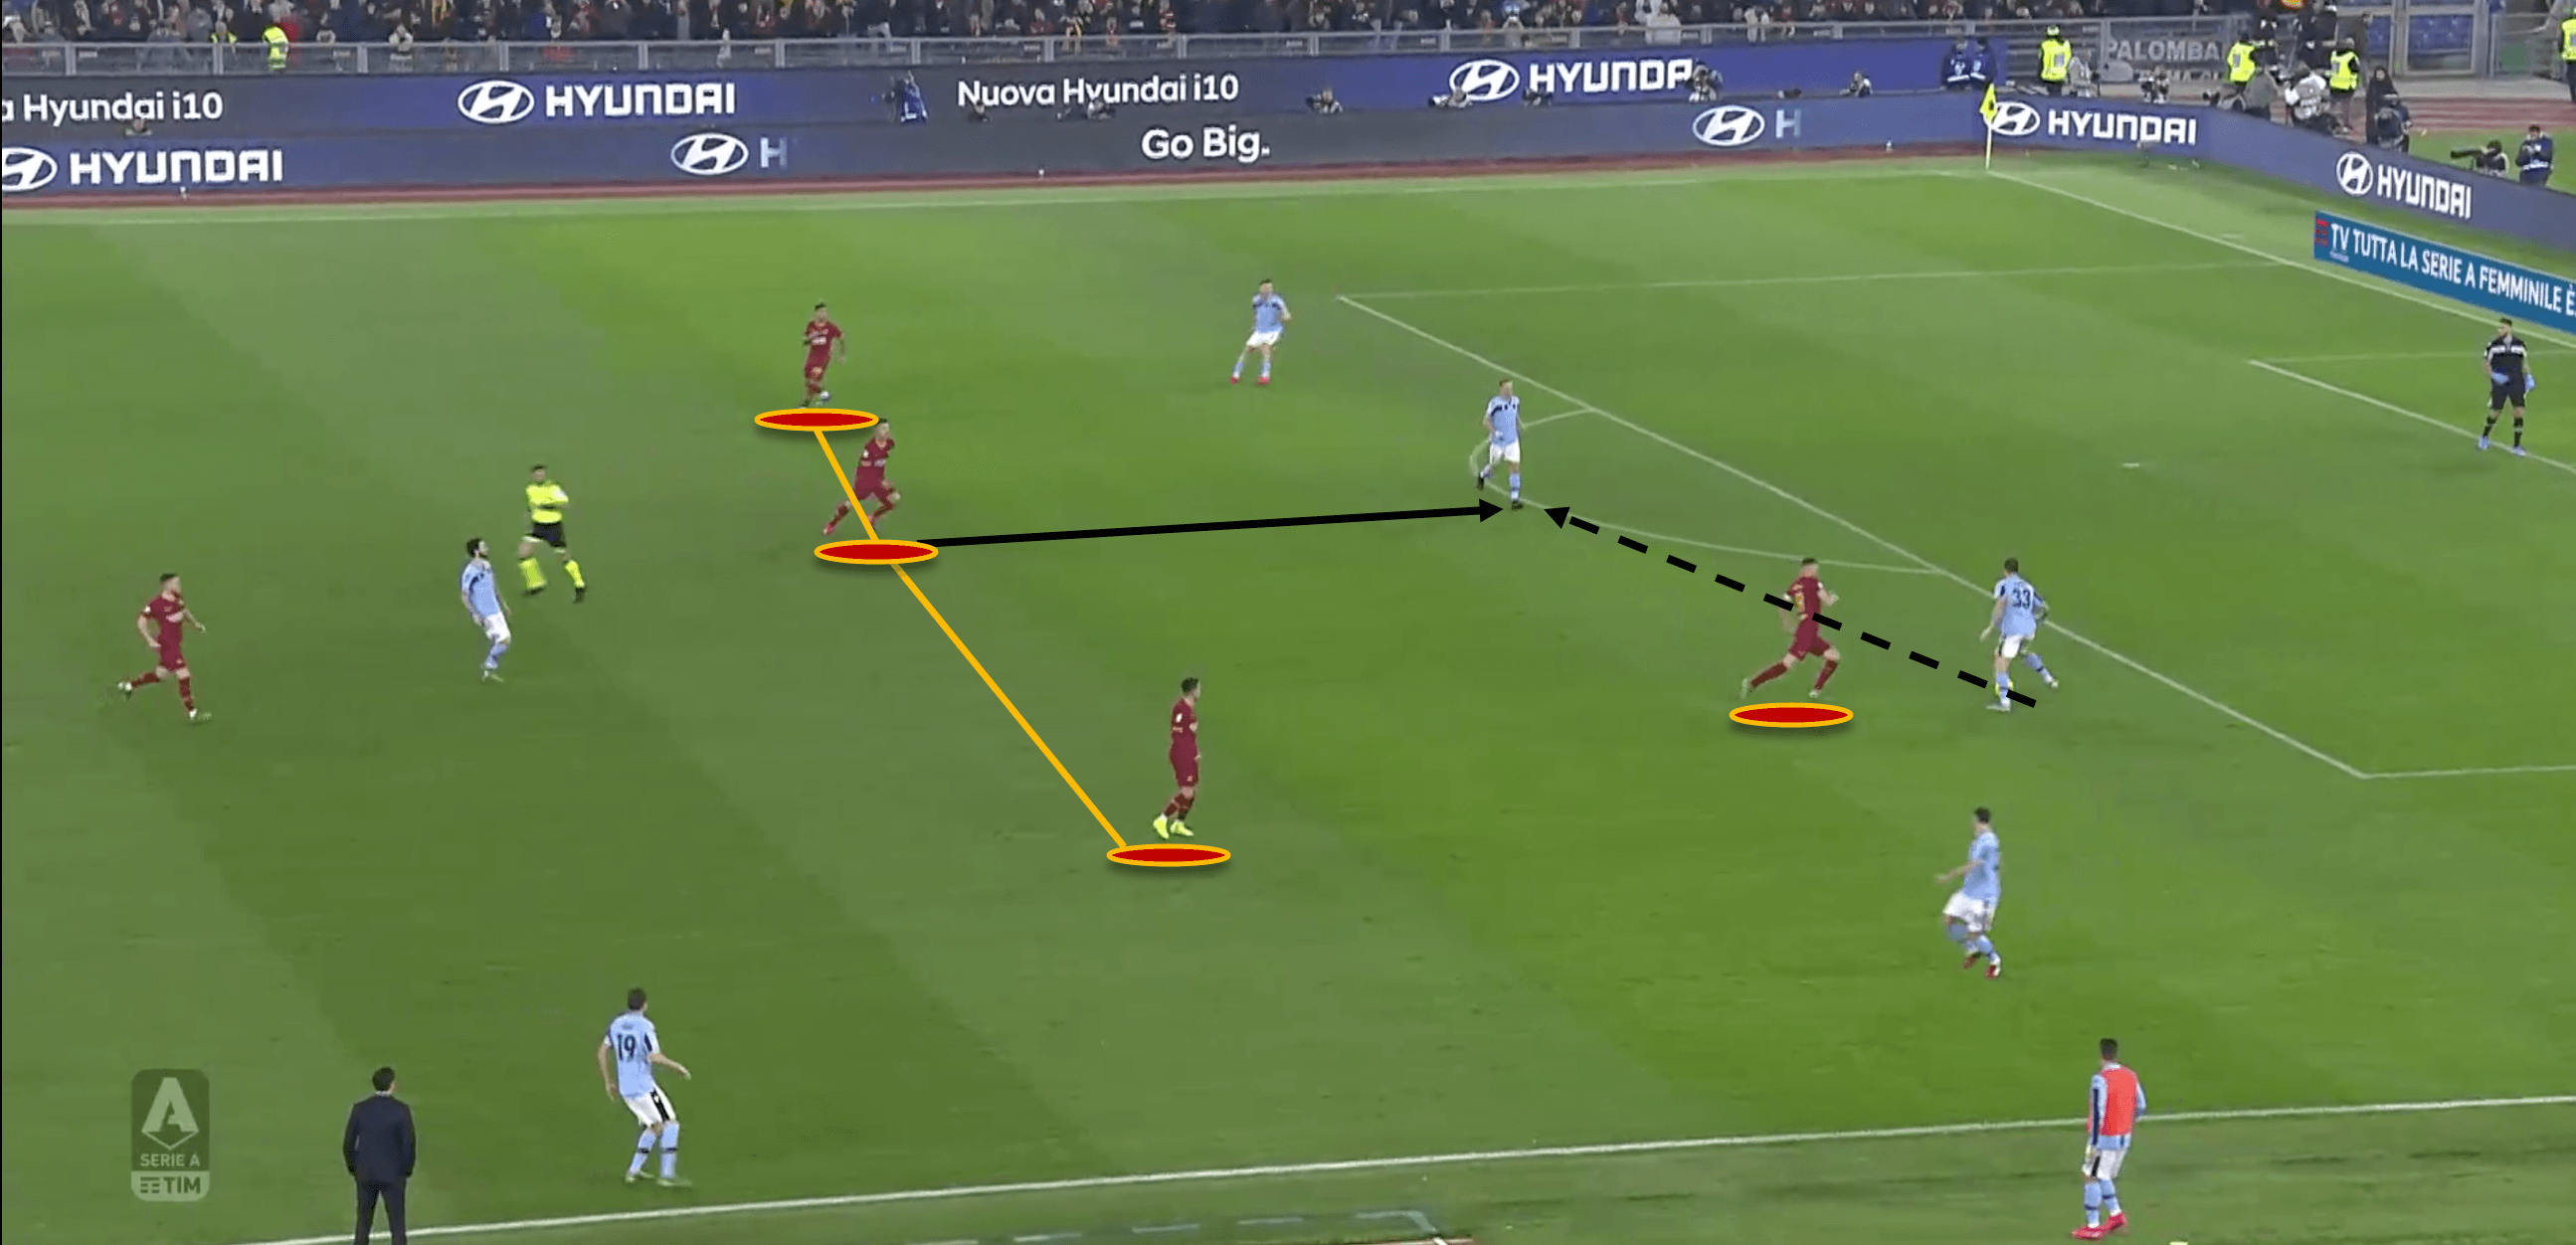 Paulo Fonseca at Roma 2019/20 - tactical analysis tactics